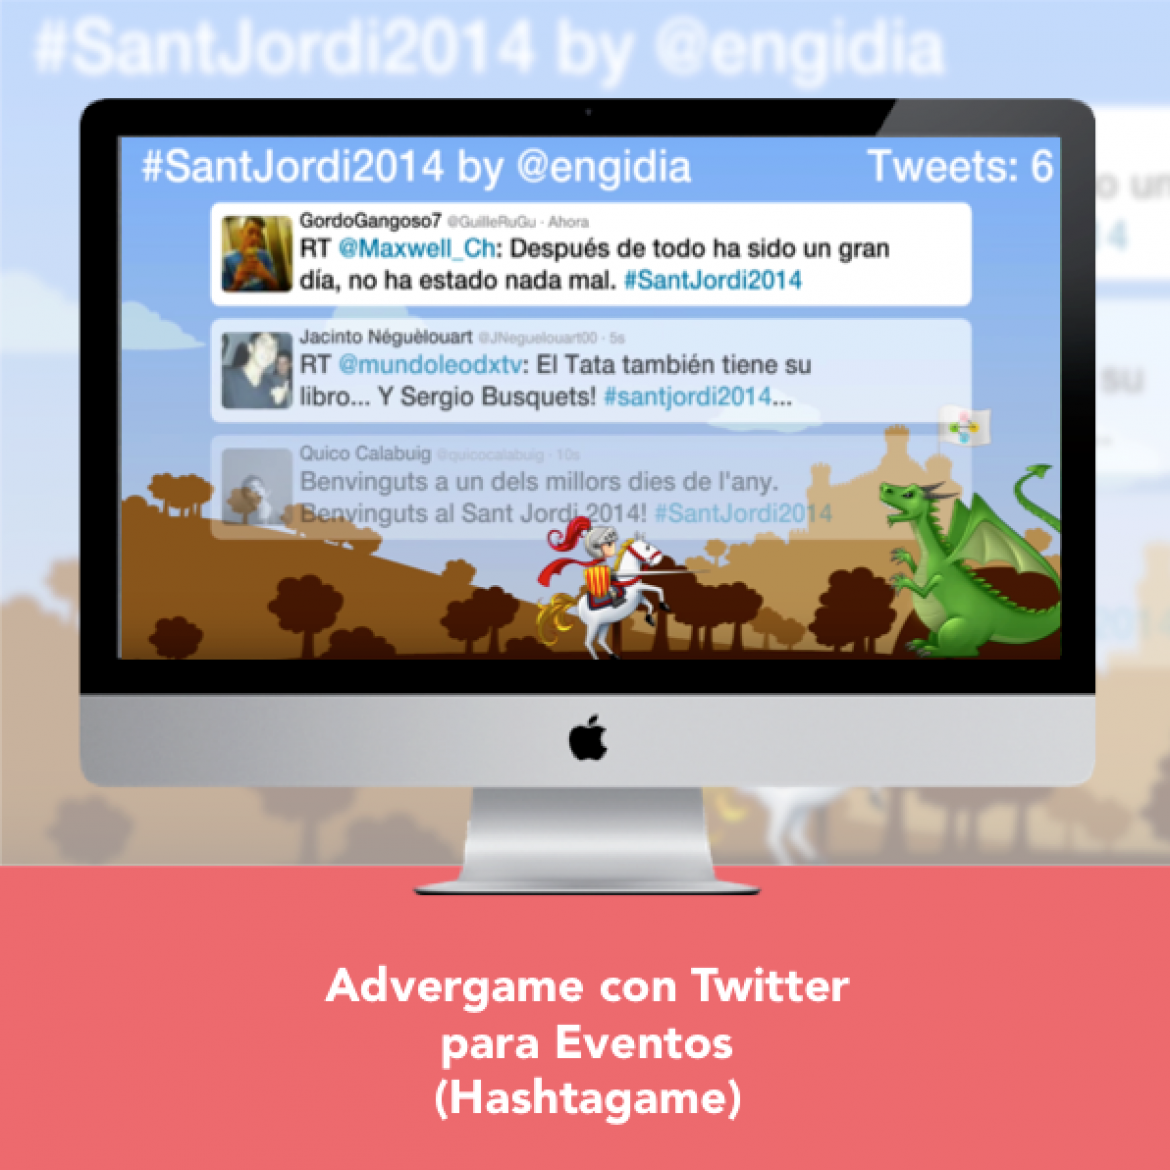 Advergame con Twitter para Eventos - Engidia